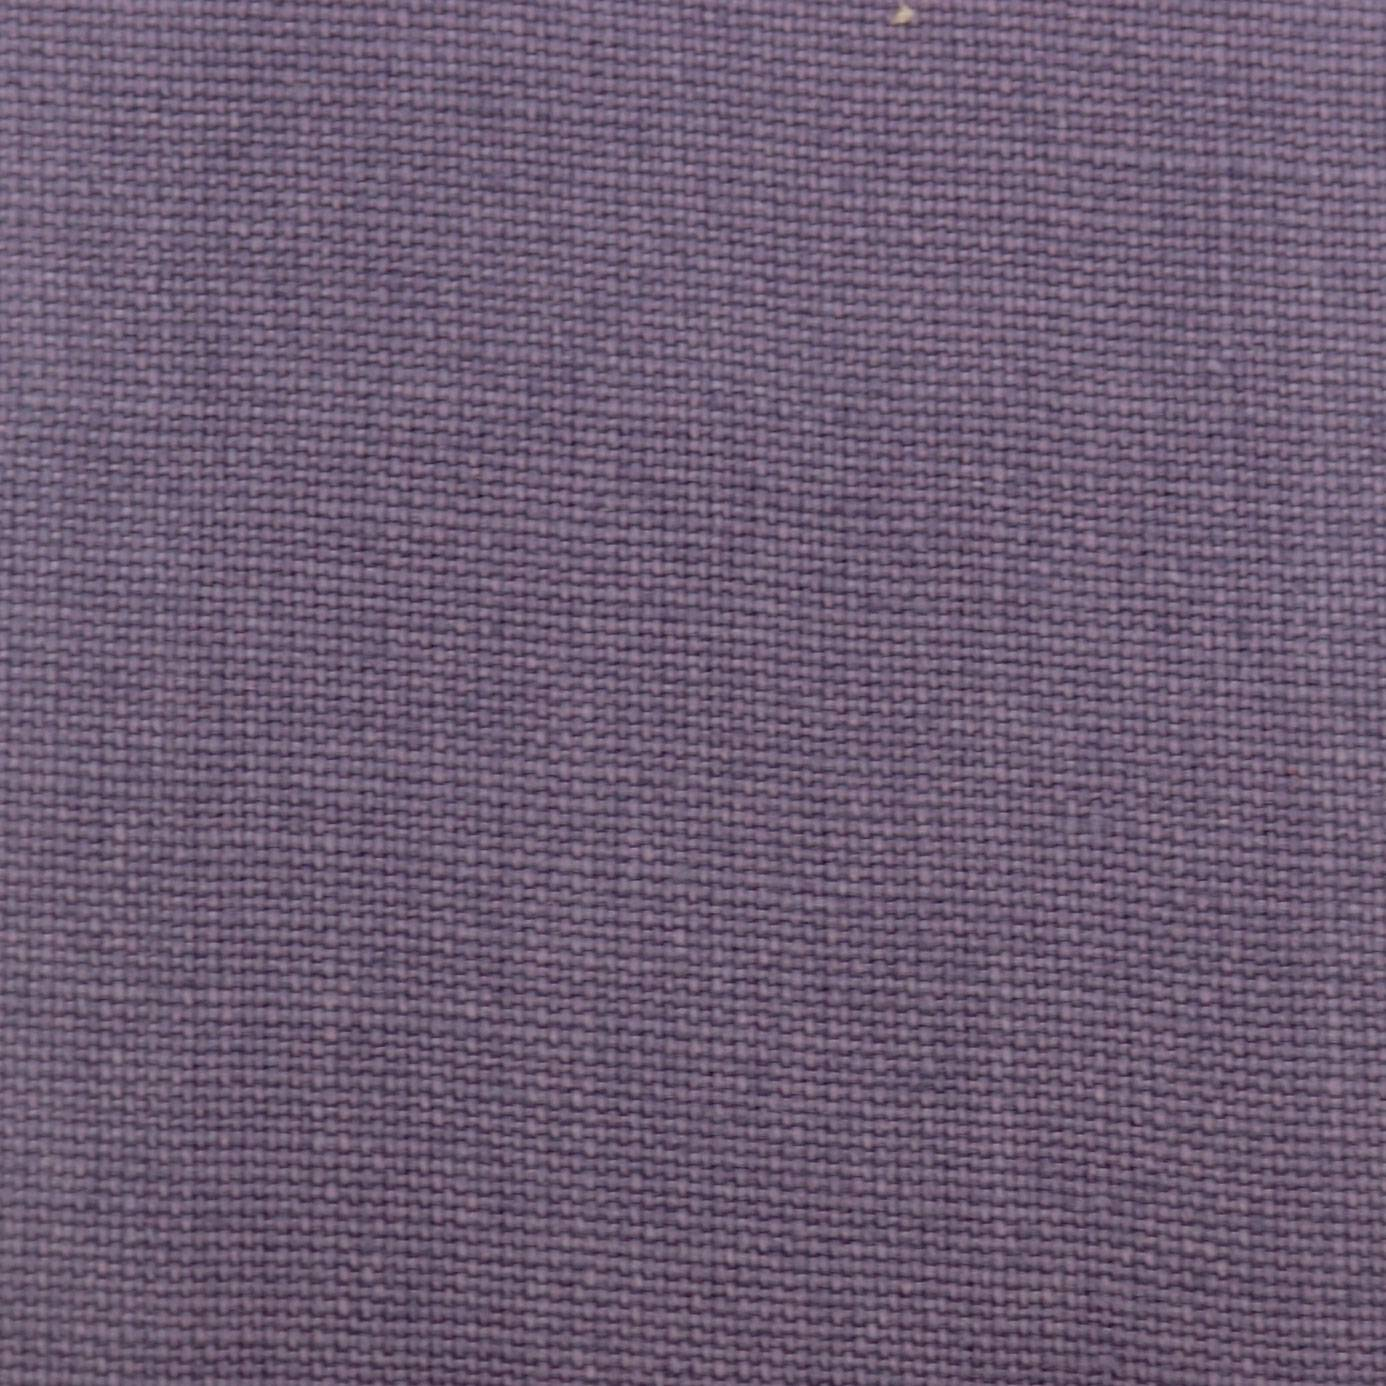 Slubby linen fabric hyancinth slubby linen hyancinth for Fabric material